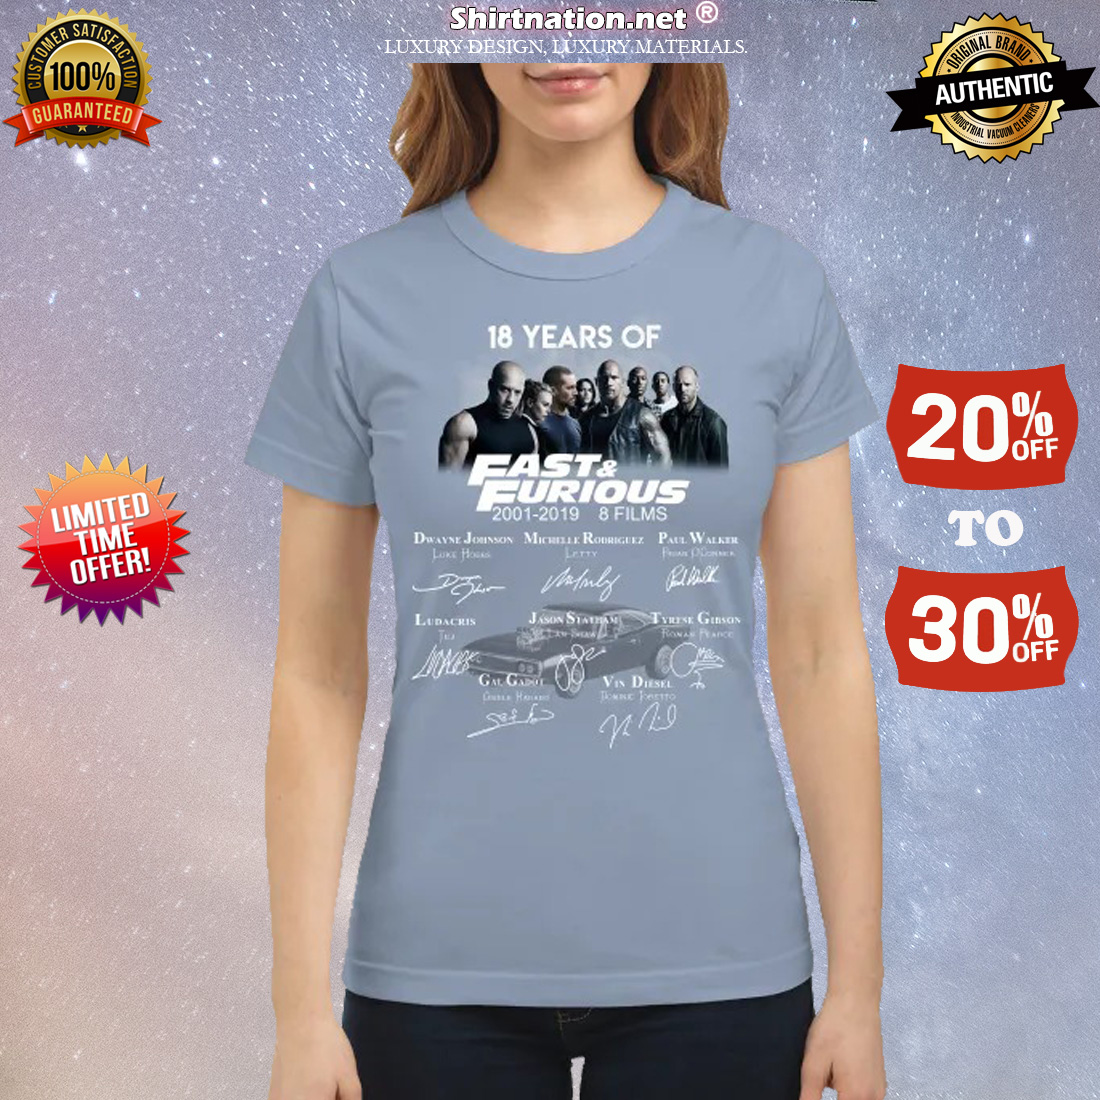 18 years of fast and furious 8 films classic shirt